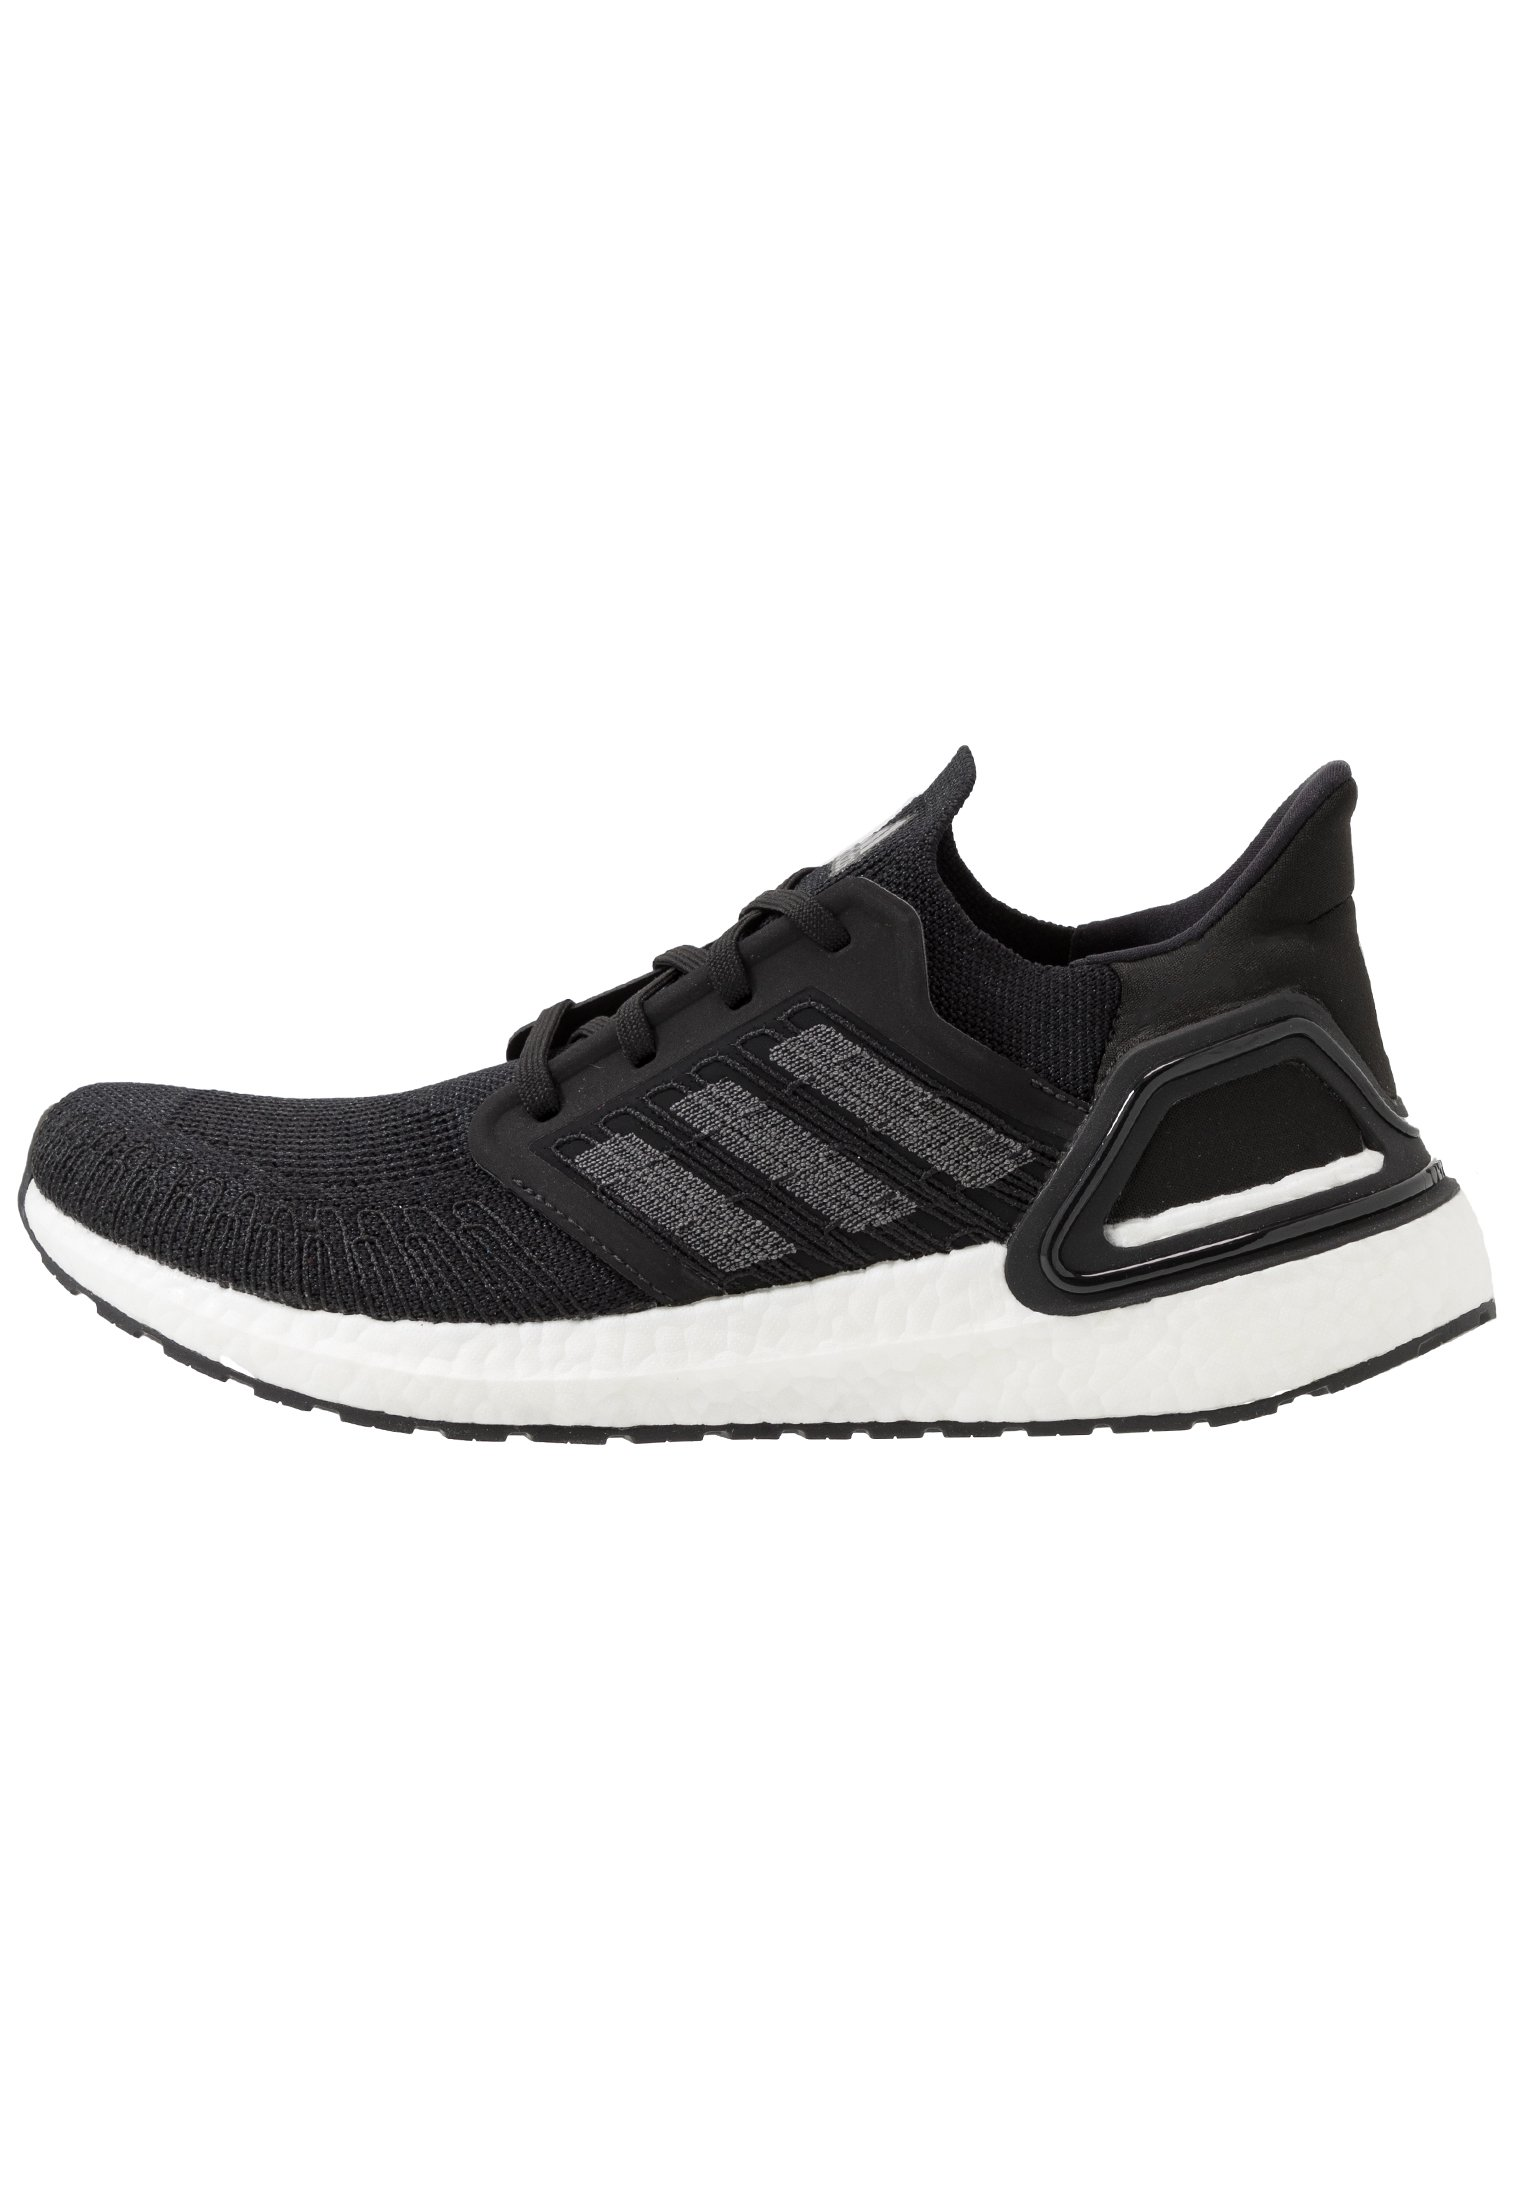 adidas Performance ULTRABOOST 20 PRIMEKNIT RUNNING SHOES